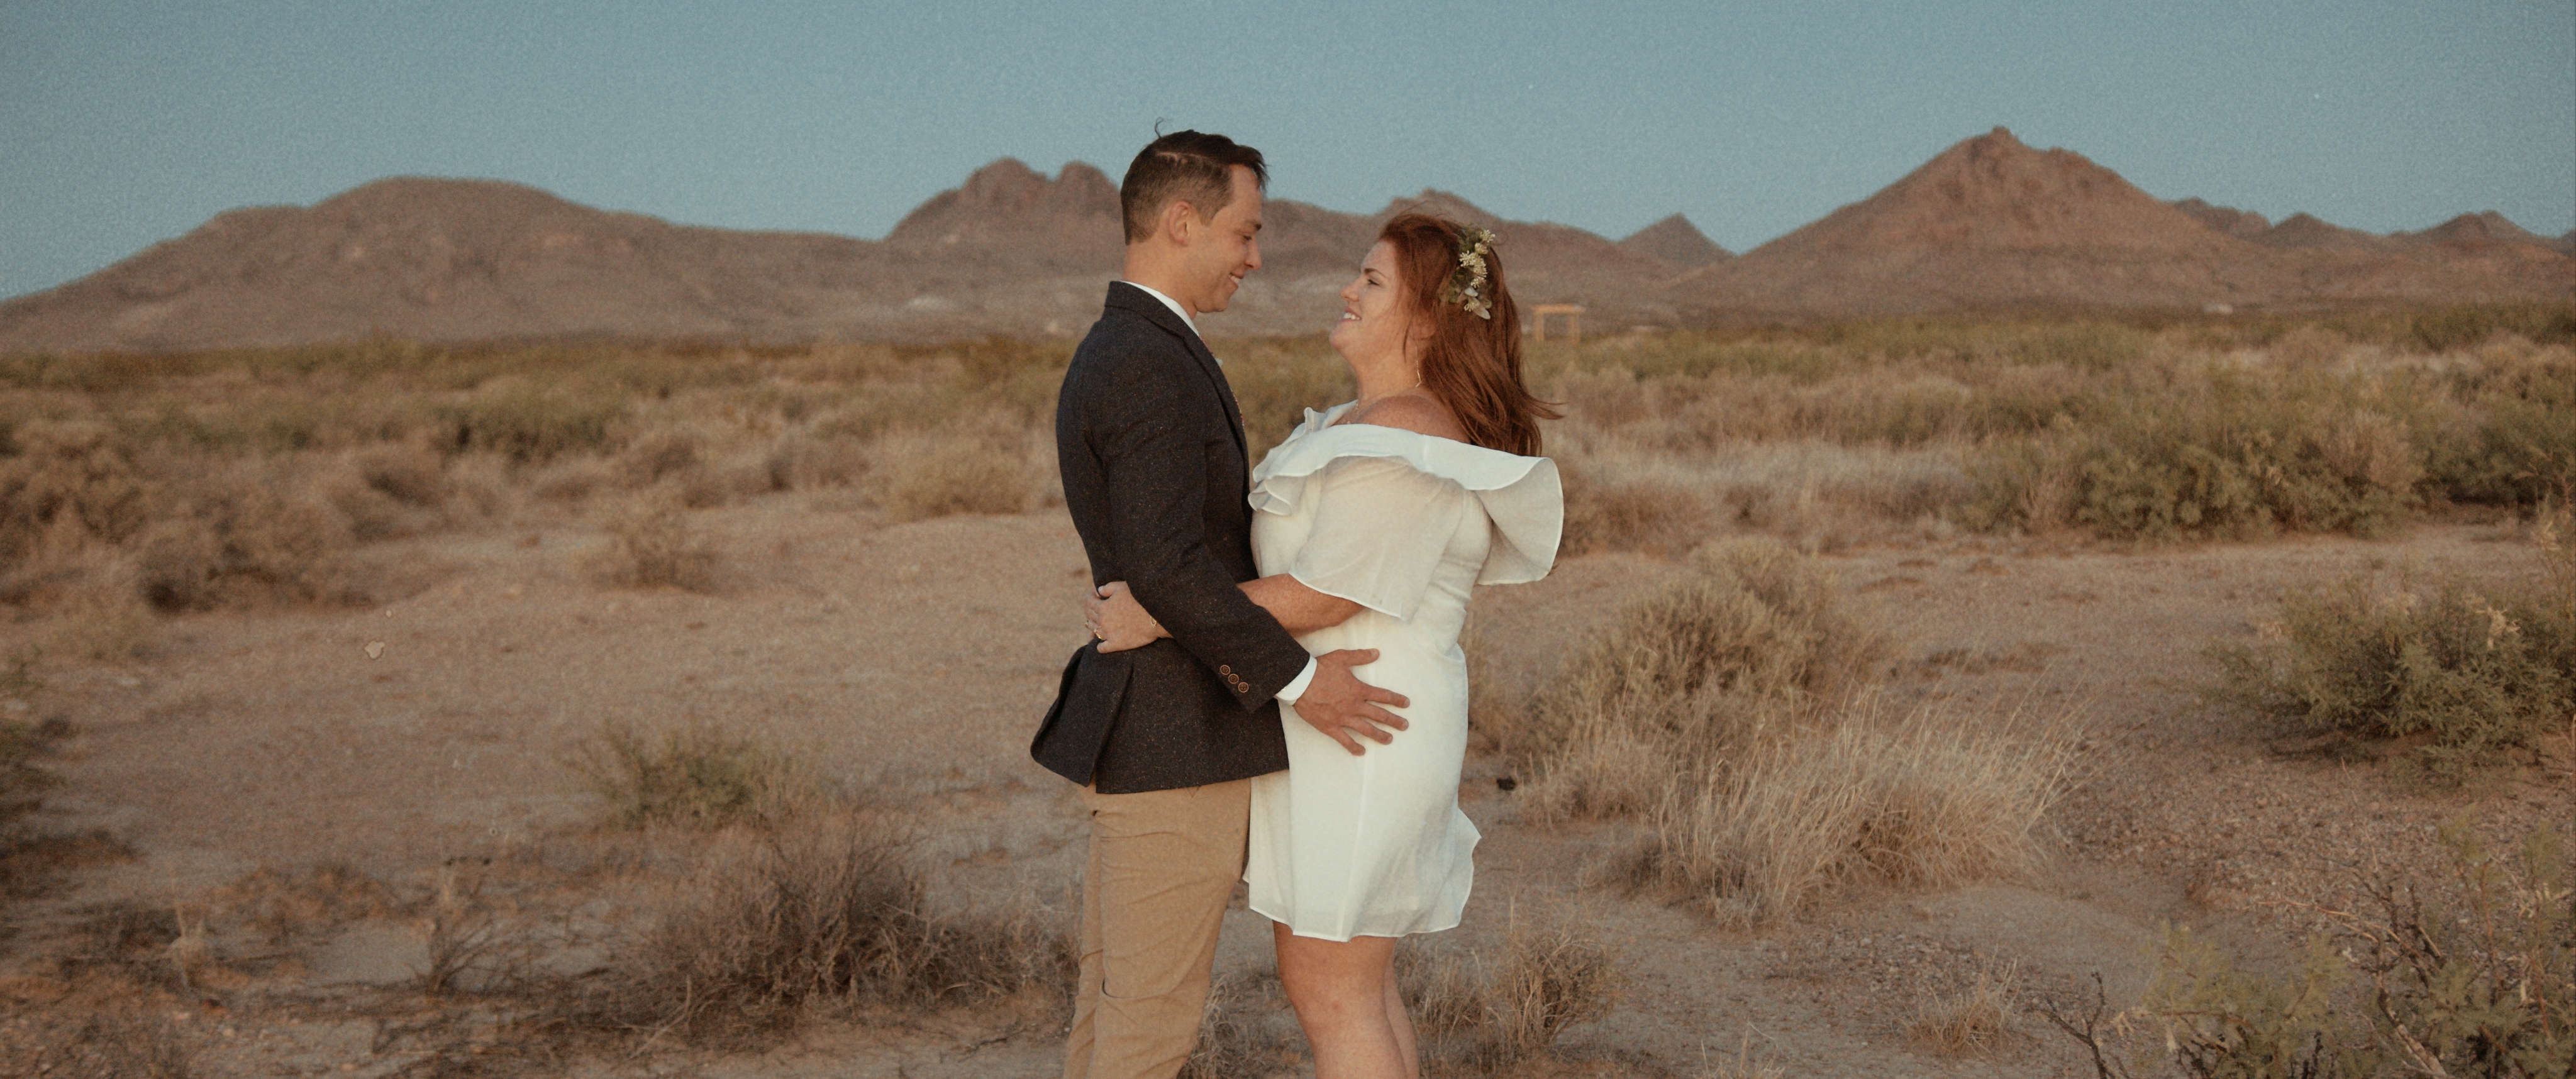 Gavin + Kelly | Terlingua, Texas | A Campsite